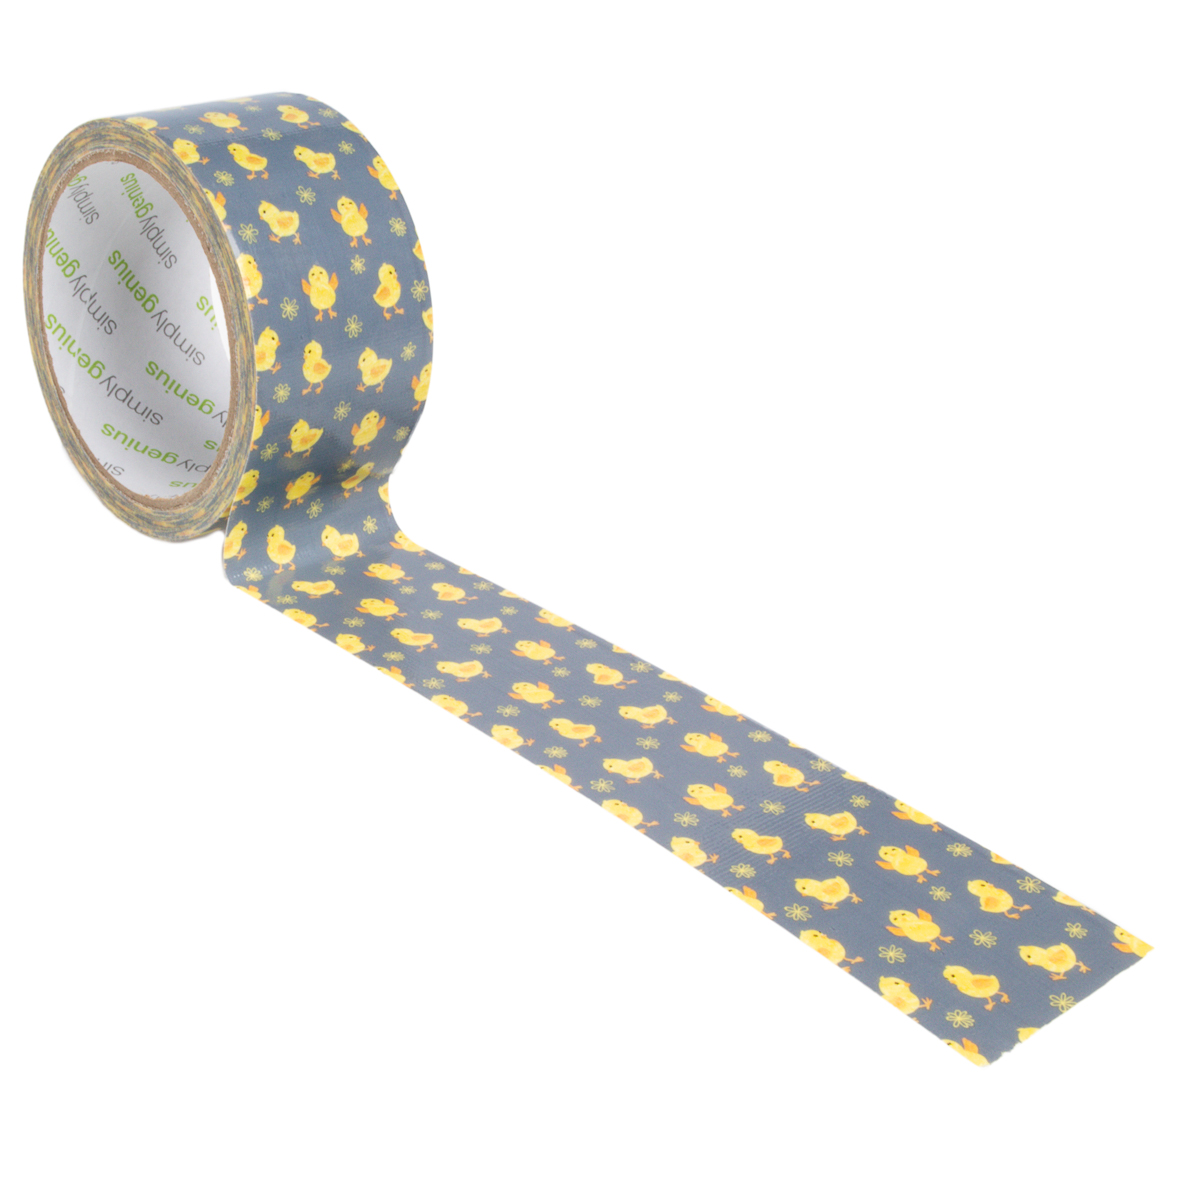 Simply-Genius-Duct-Tape-Roll-Colors-Patterns-Craft-Supplies-Colored-amp-Patterned thumbnail 36